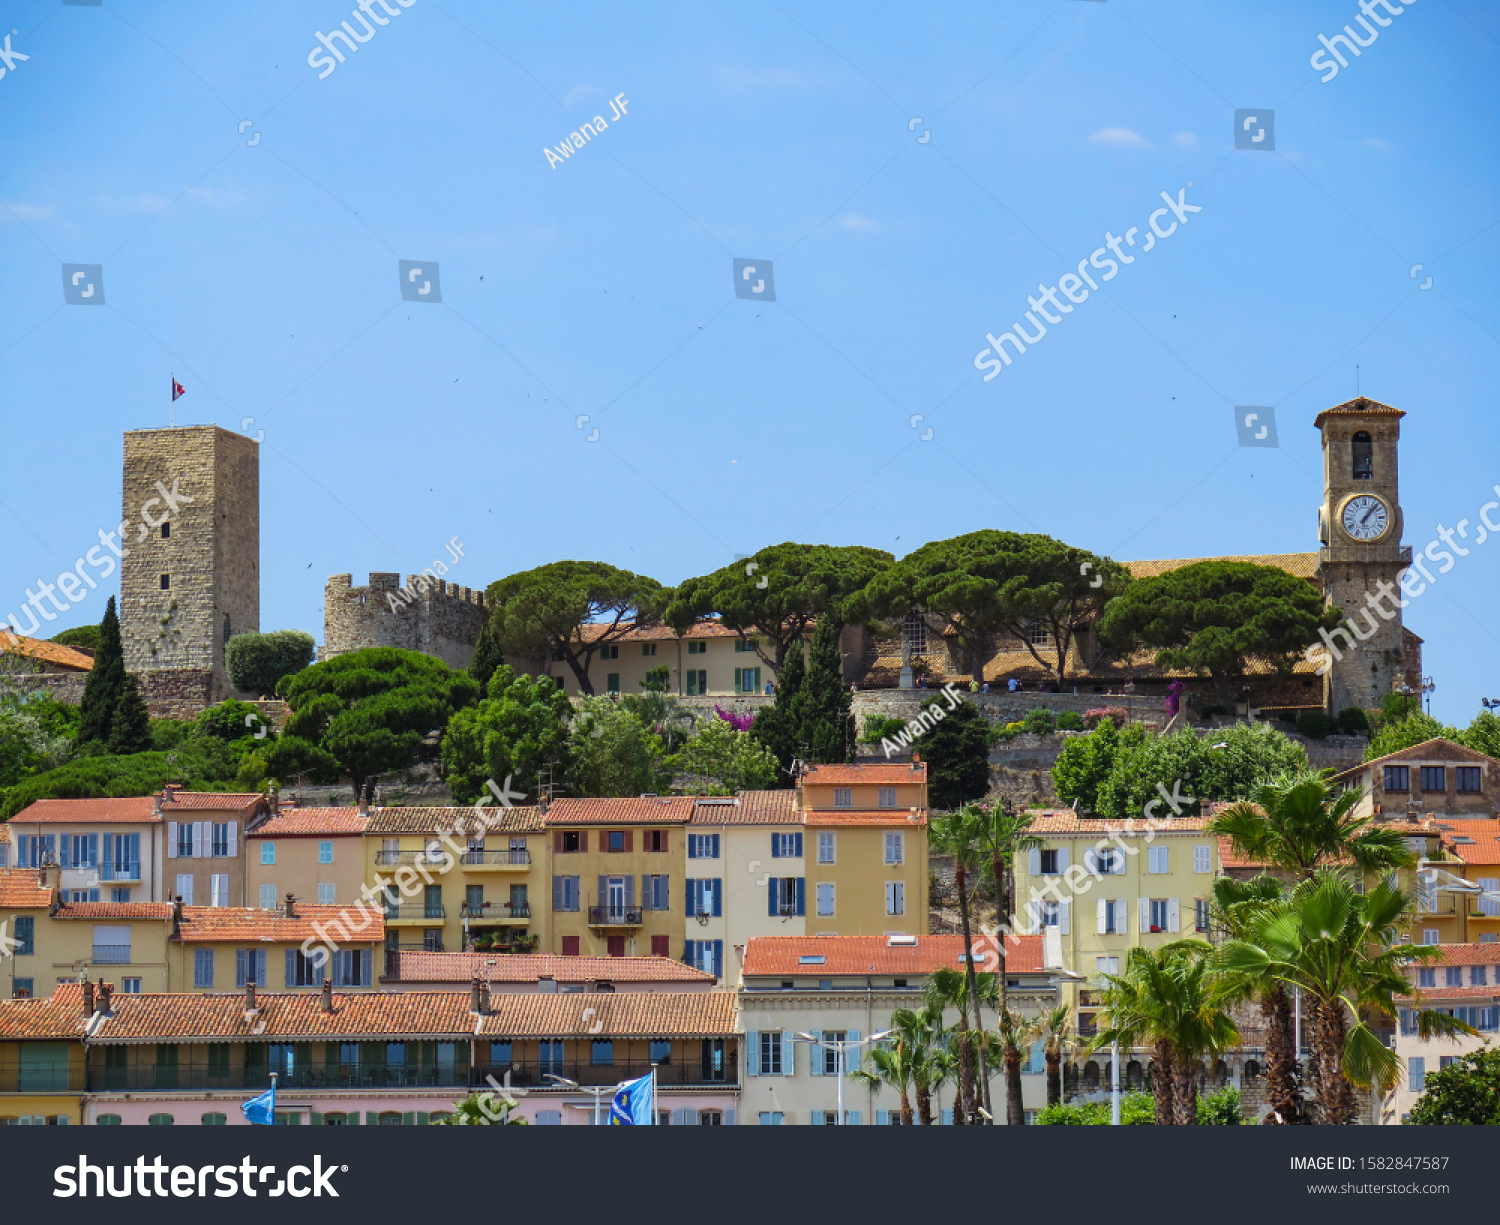 stock-photo-beautiful-view-of-cannes-cas